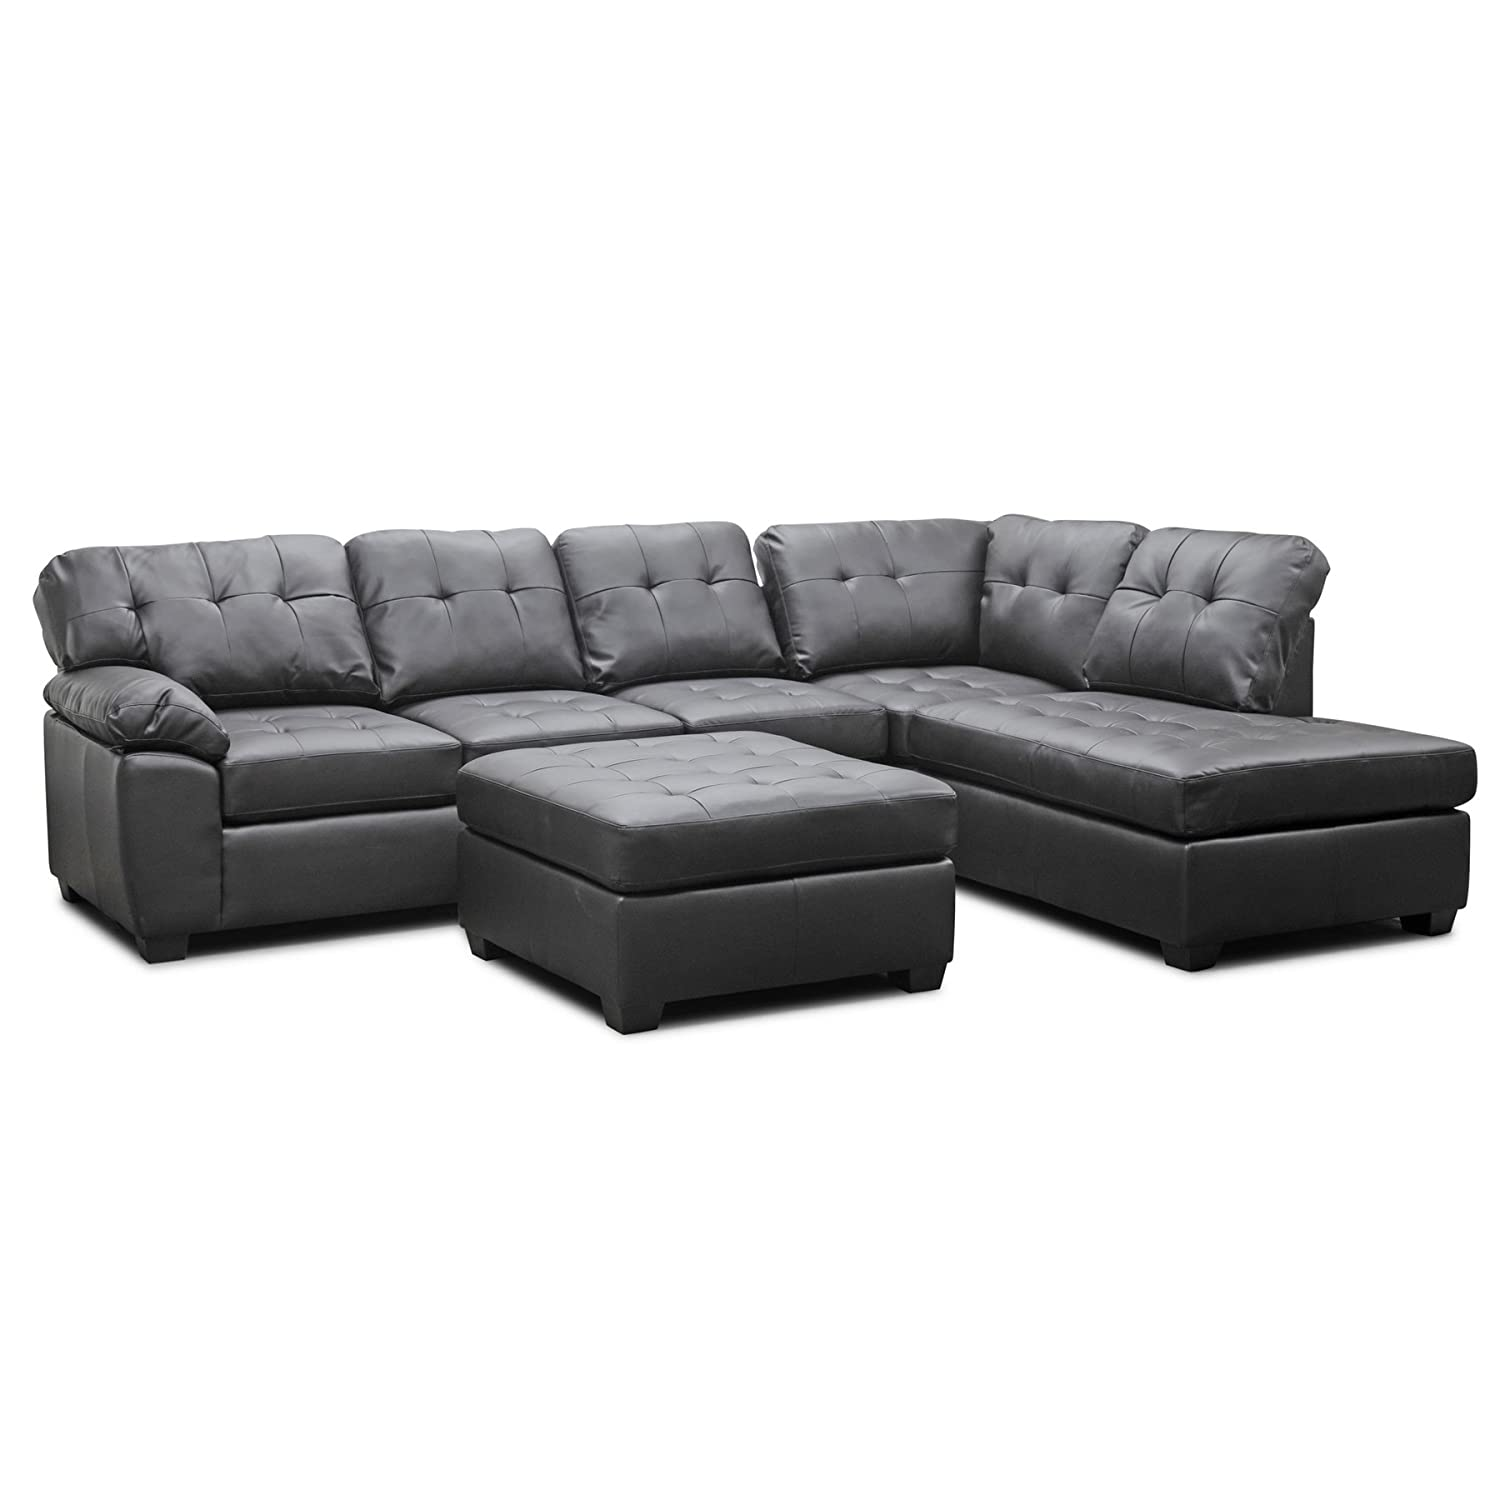 Amazon.com: Baxton Studio Mario Modern Sectional Sofa with Ottoman ...